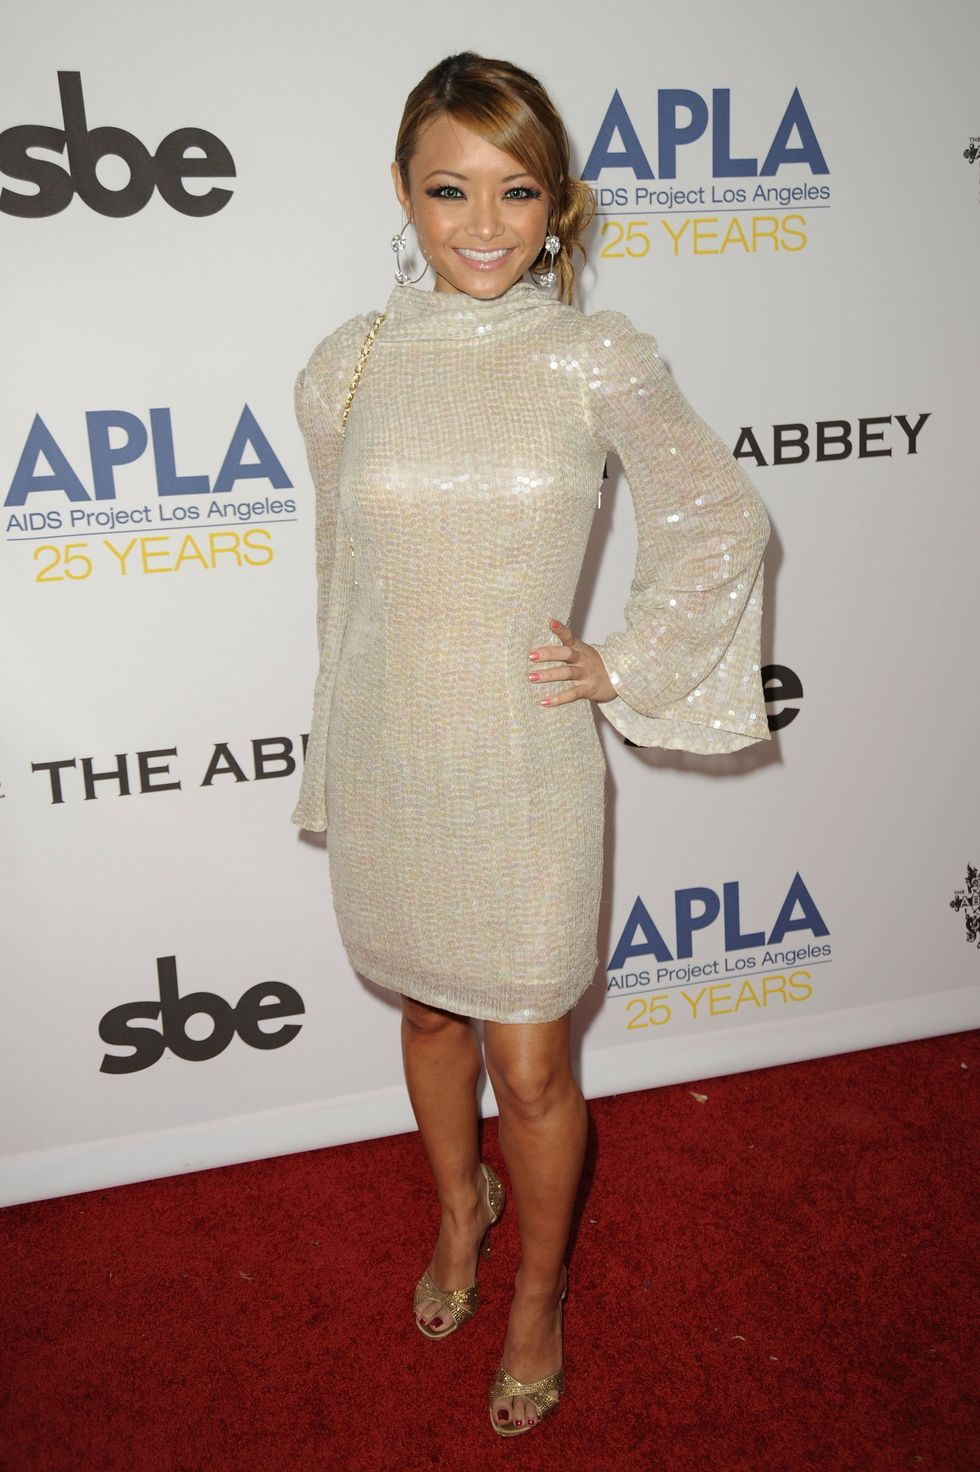 tila-tequila-8th-annual-apla-oscars-viewing-party-01